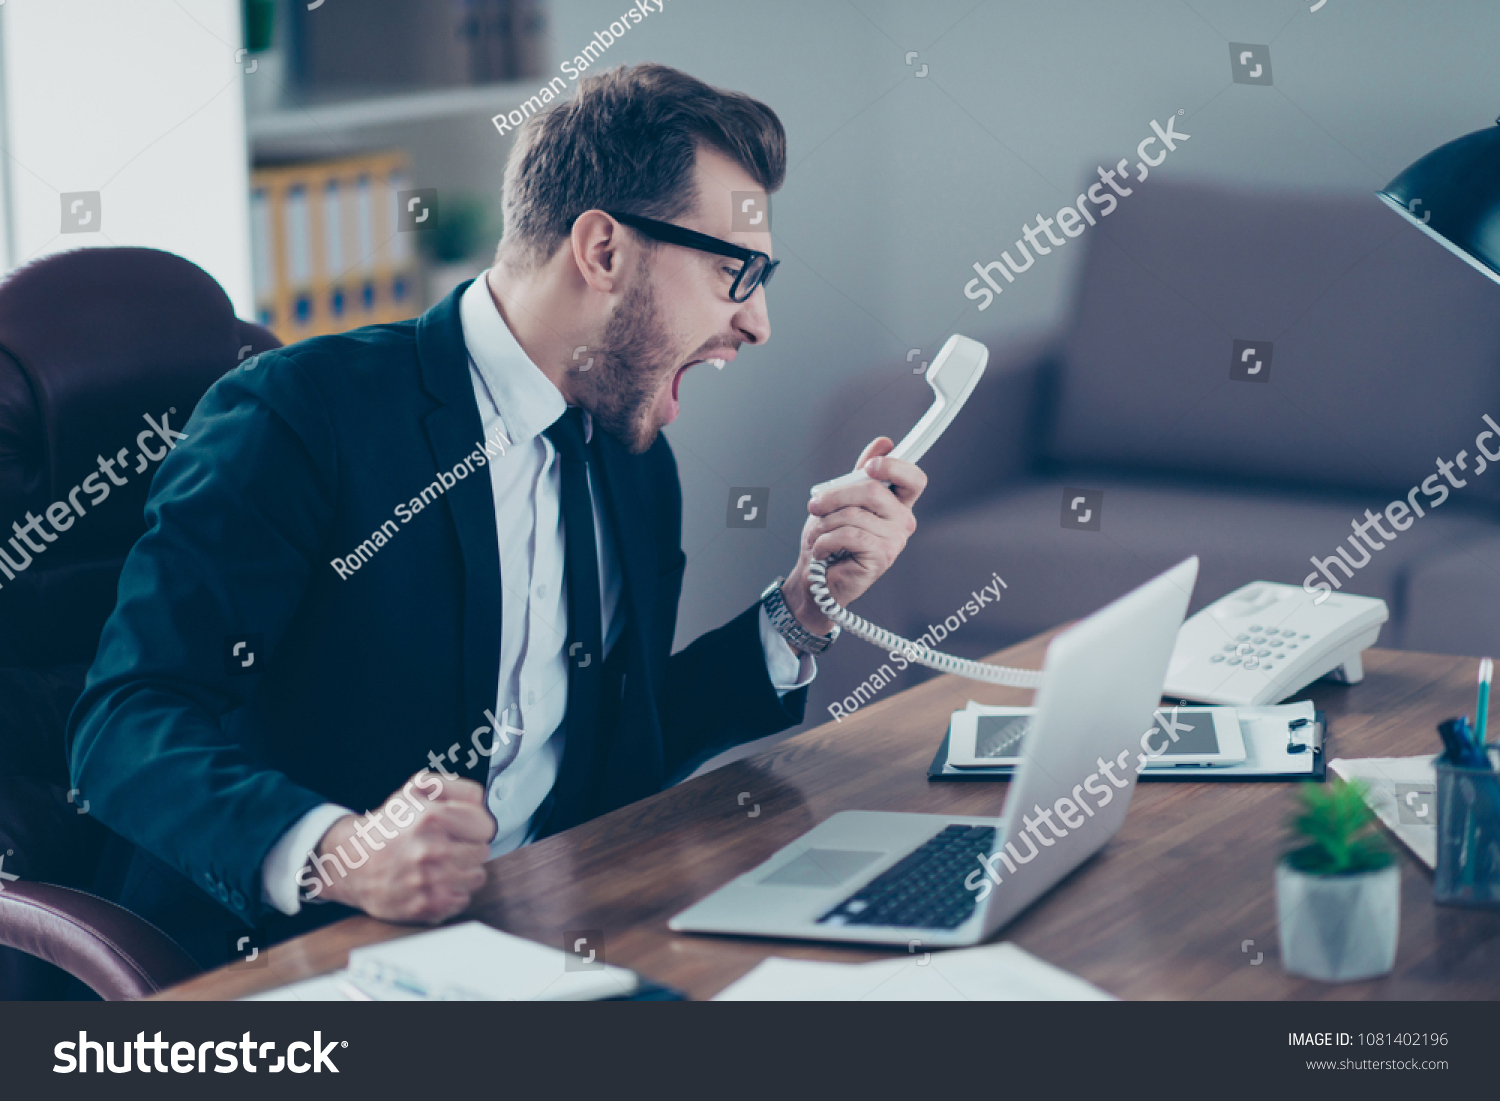 Corporate mad people yell authority tell speak with staff people person concept. Side profile view portrait of disappointed tired busy sad upset agent financier shouting on receiver in his hand #1081402196